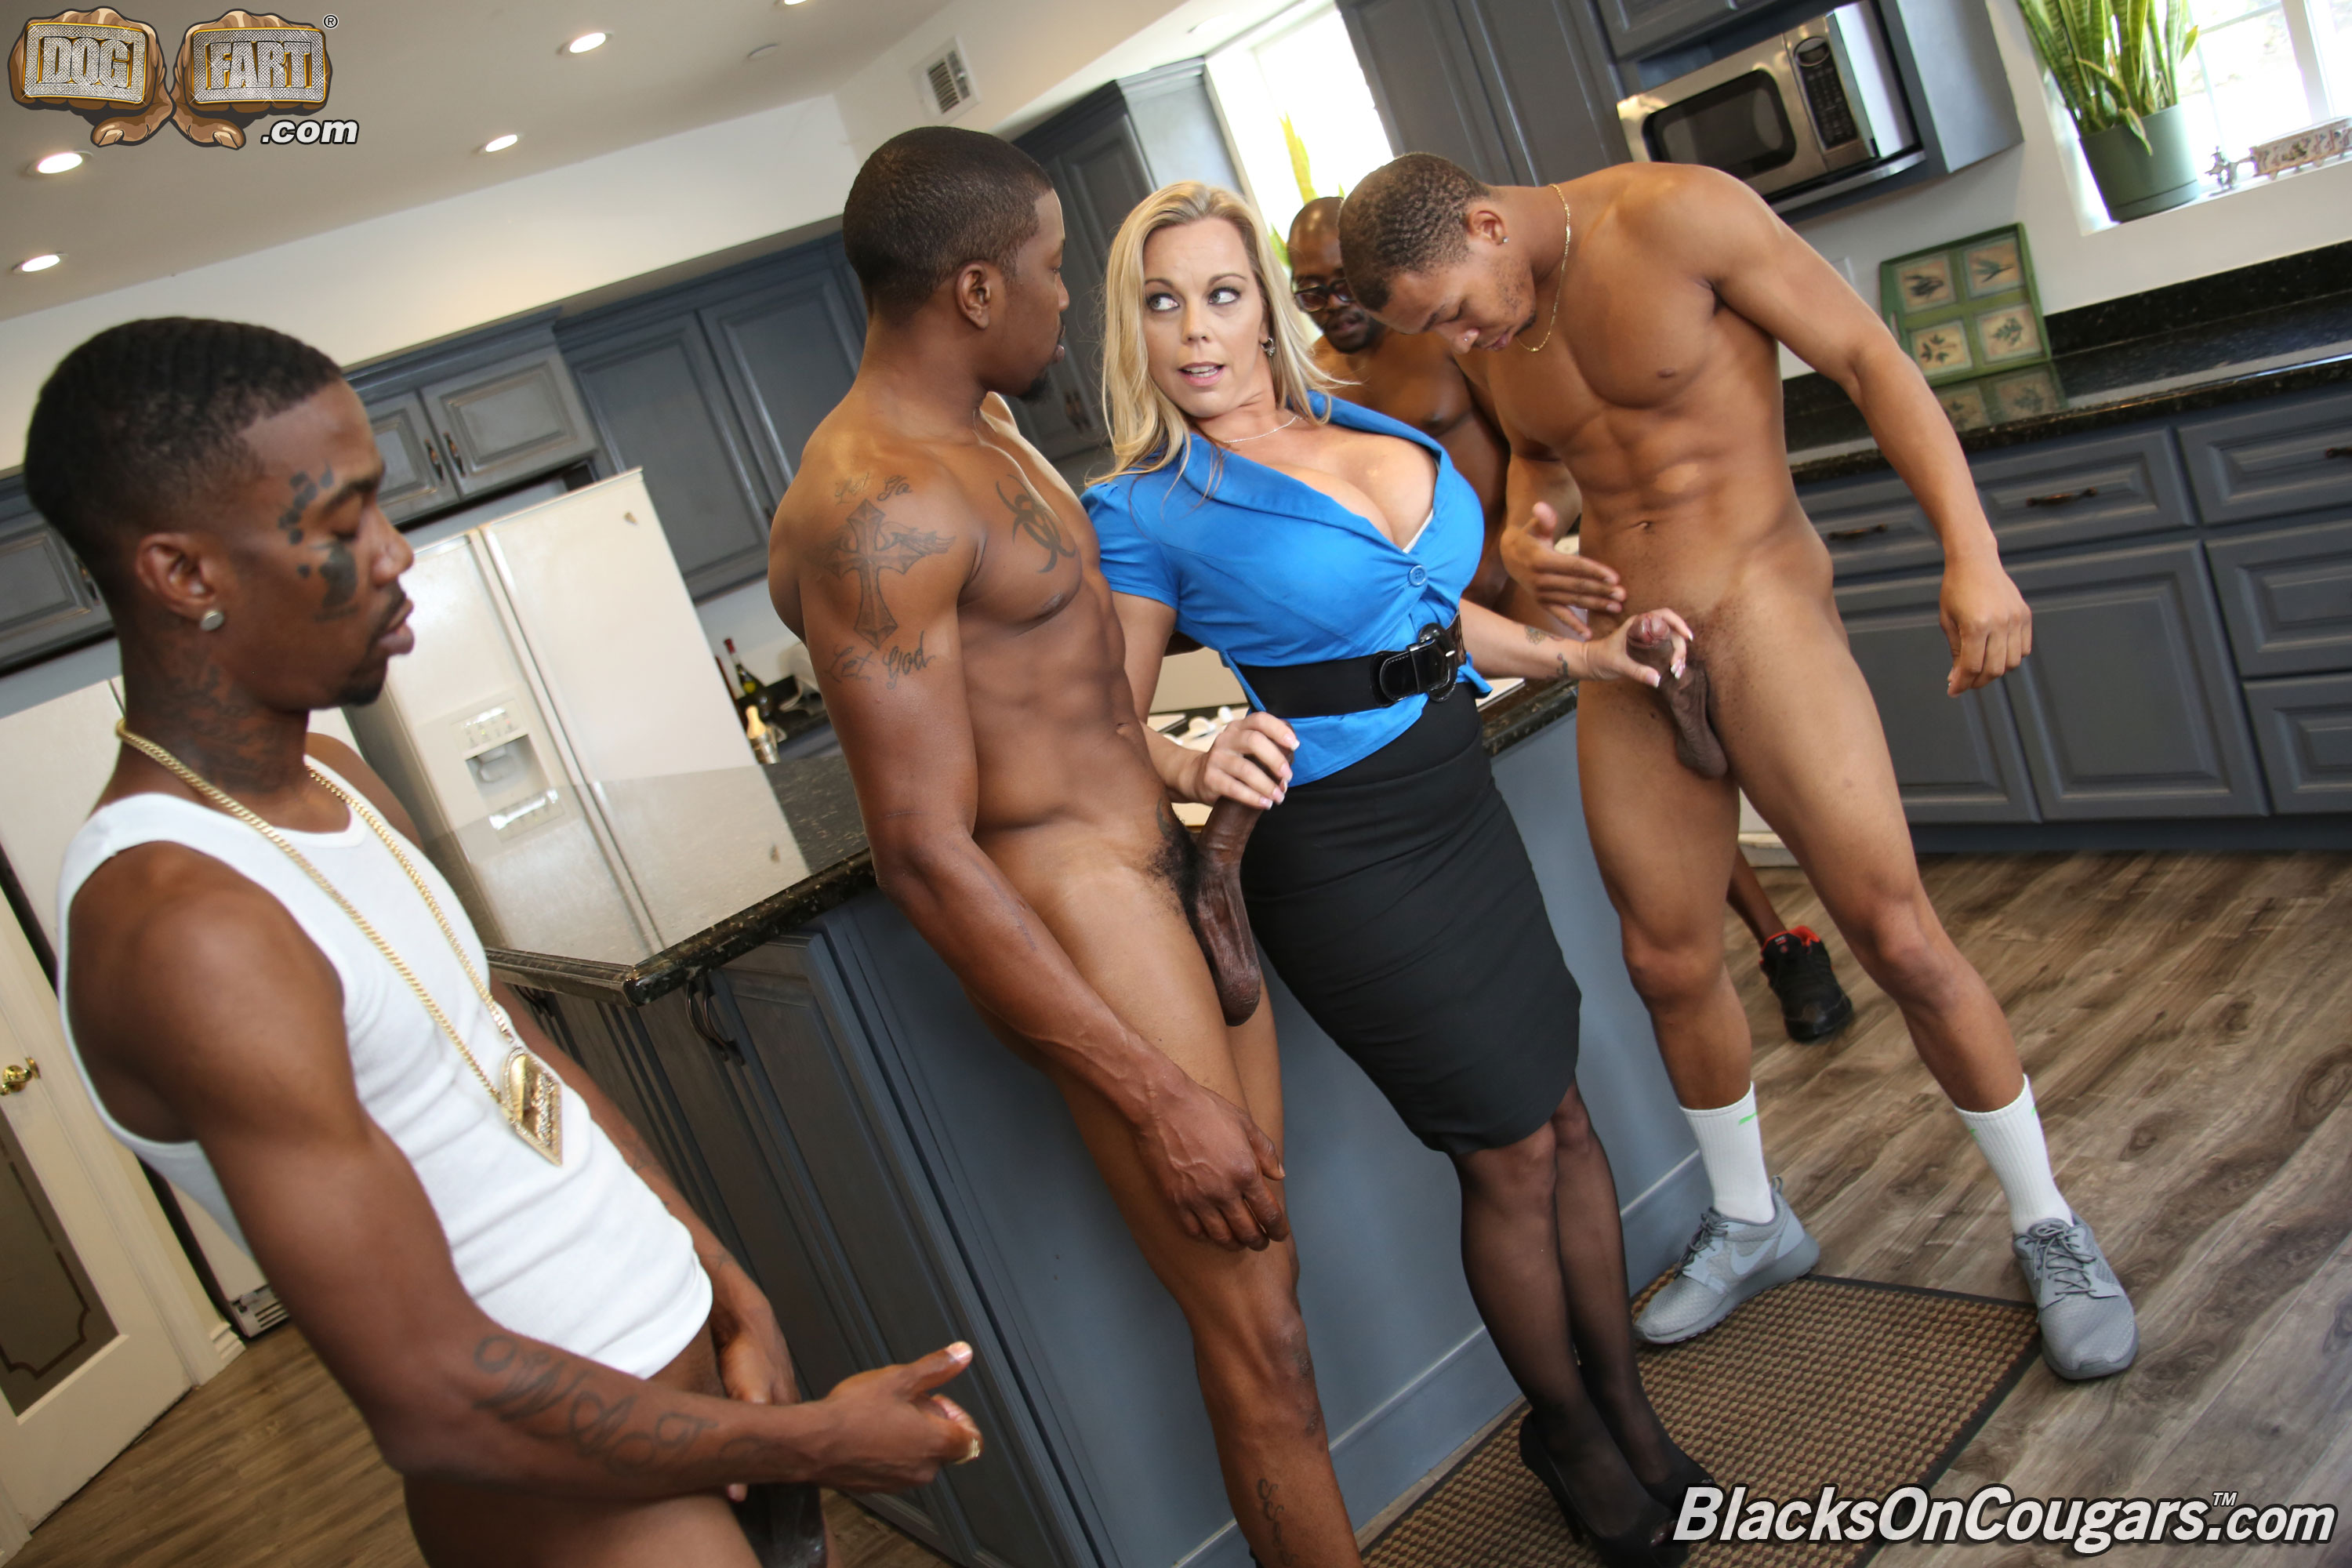 Amara romani gets gangbanged by black cocks 9